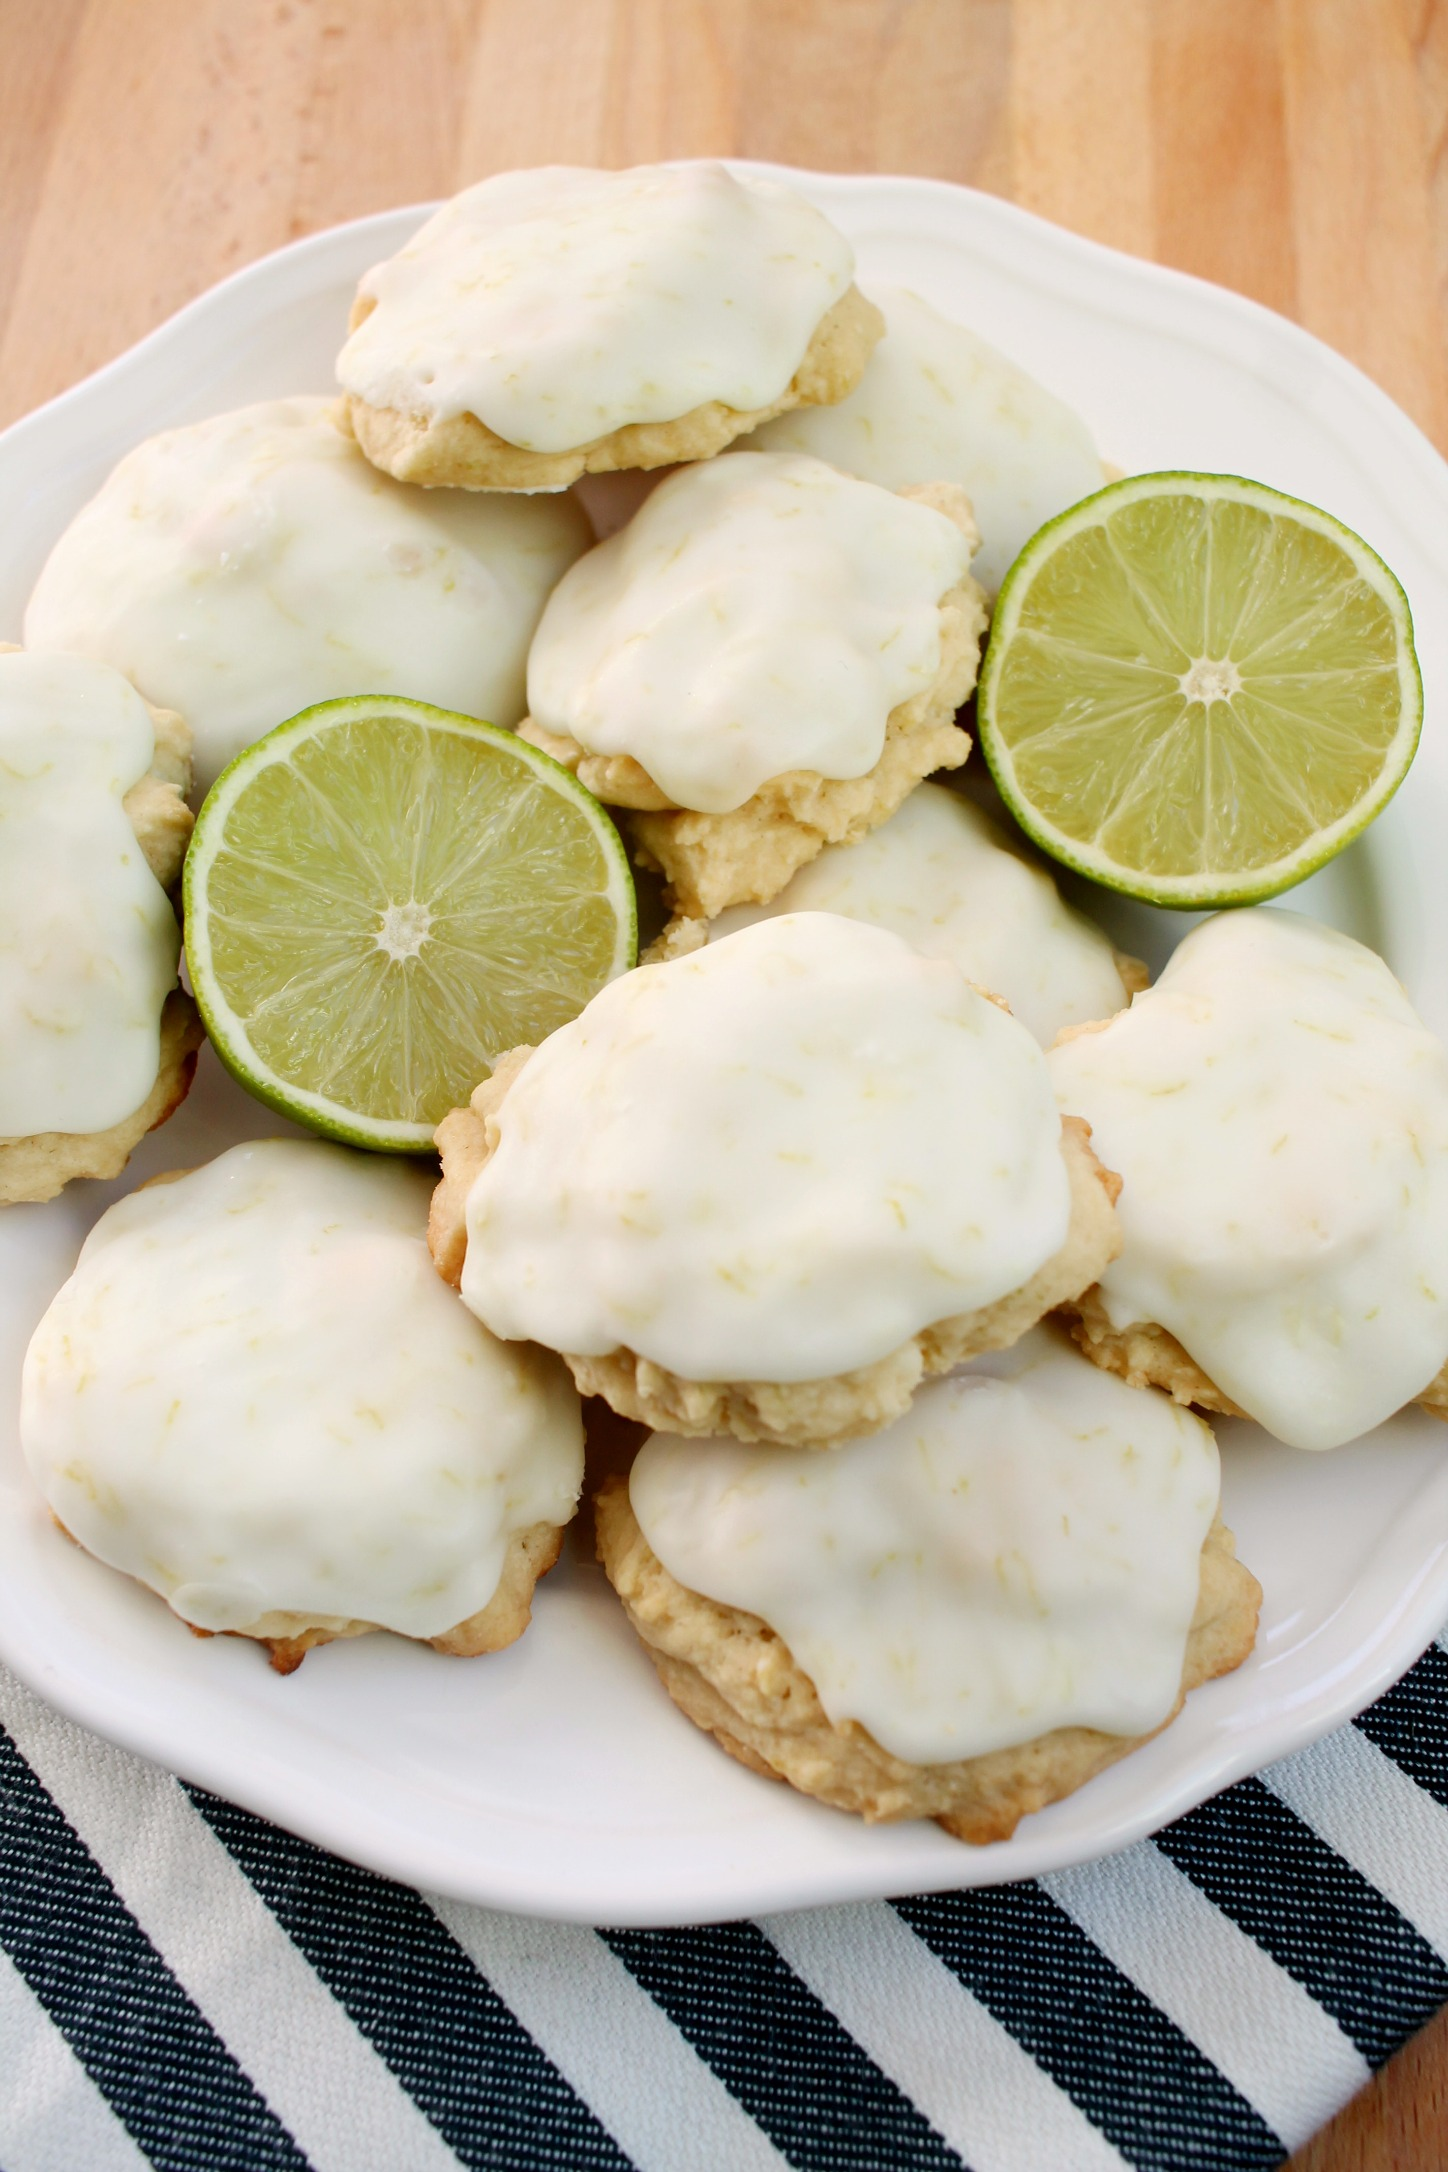 a pile of frosted lime cookies and two lime slices on a white plate with a navy and white striped towel underneath